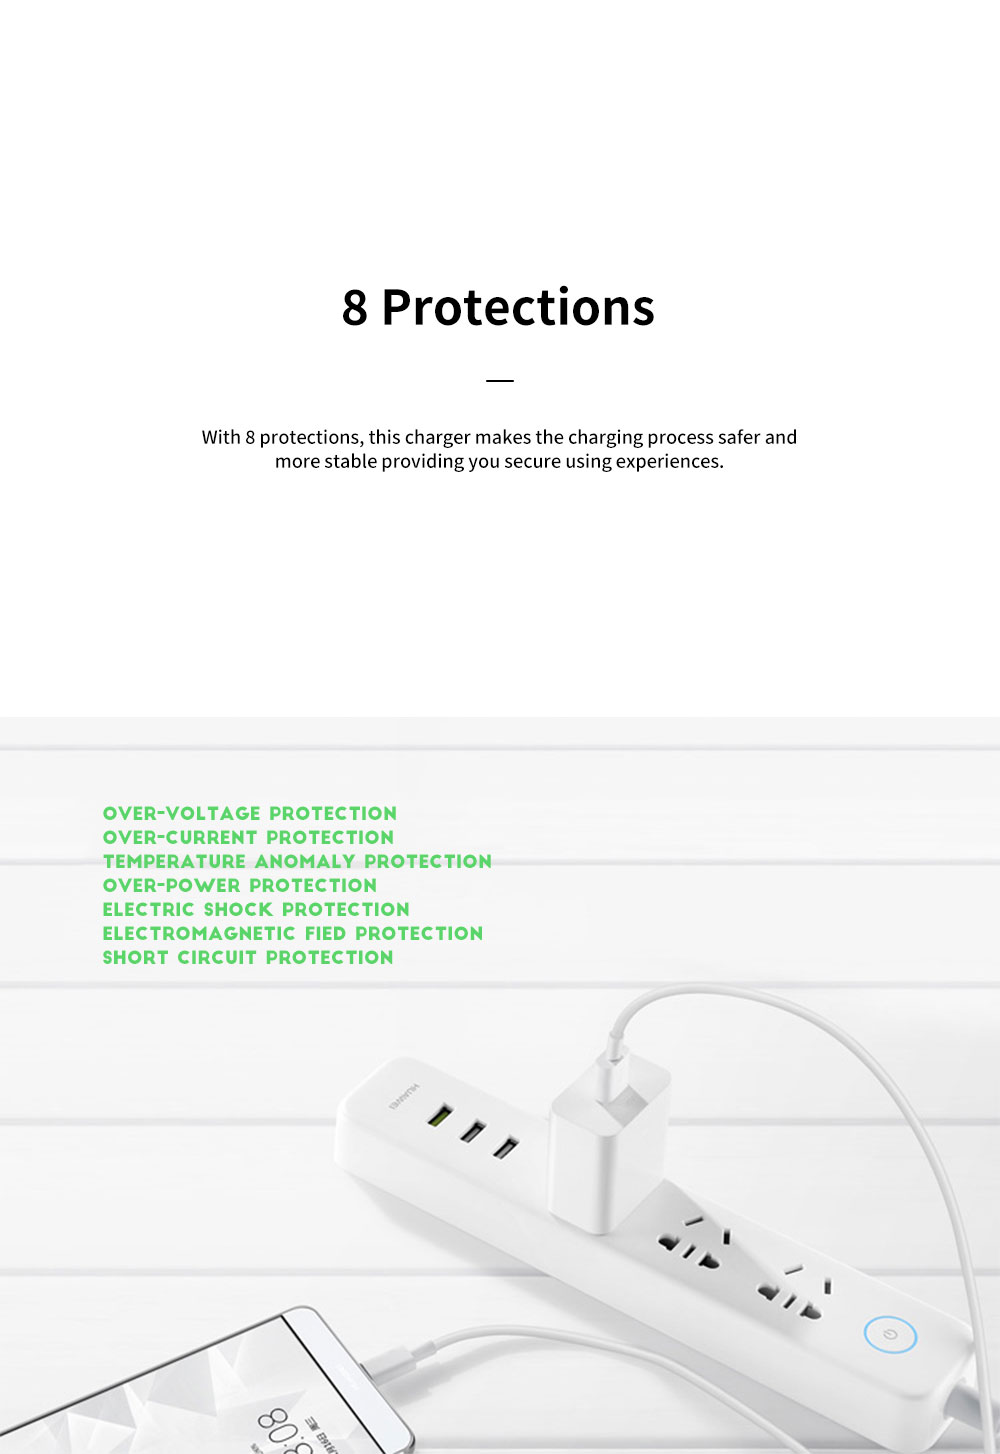 Light Portable Super Quick Charging Wide Compatibility Original Huawei Charger with 8 Protections 6-Level Energy Efficiency Standard 4